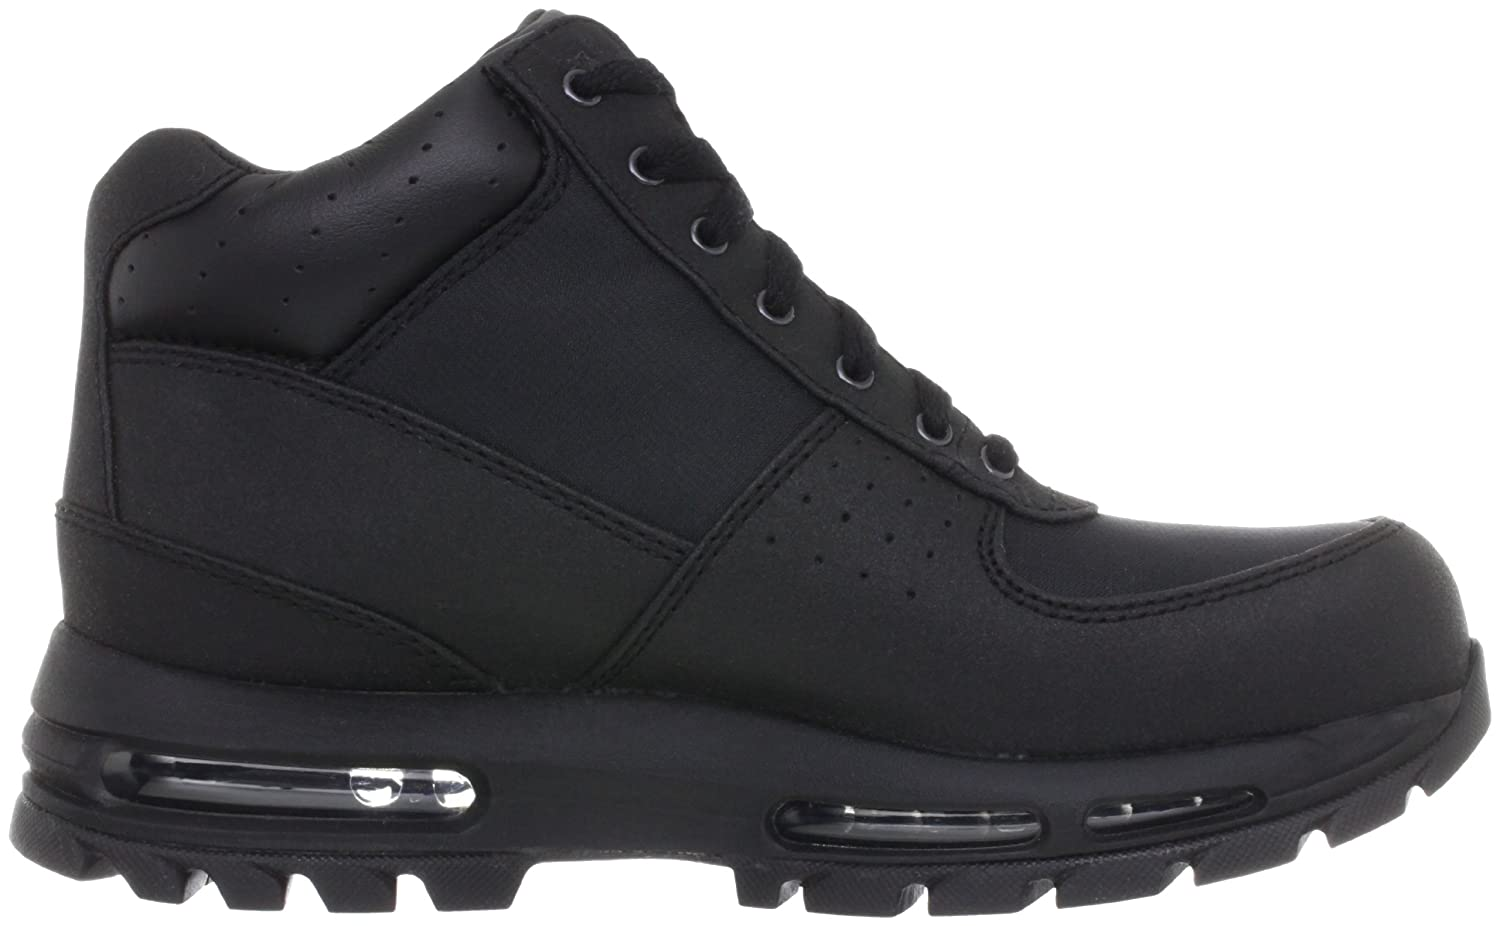 designer fashion a9831 f53ec Amazon.com   Nike Air Max Goadome II F L TT ACG Tec Tuff SCUFF Black Black-Black  Mens Shoes 414952-002-7.5   Fashion Sneakers